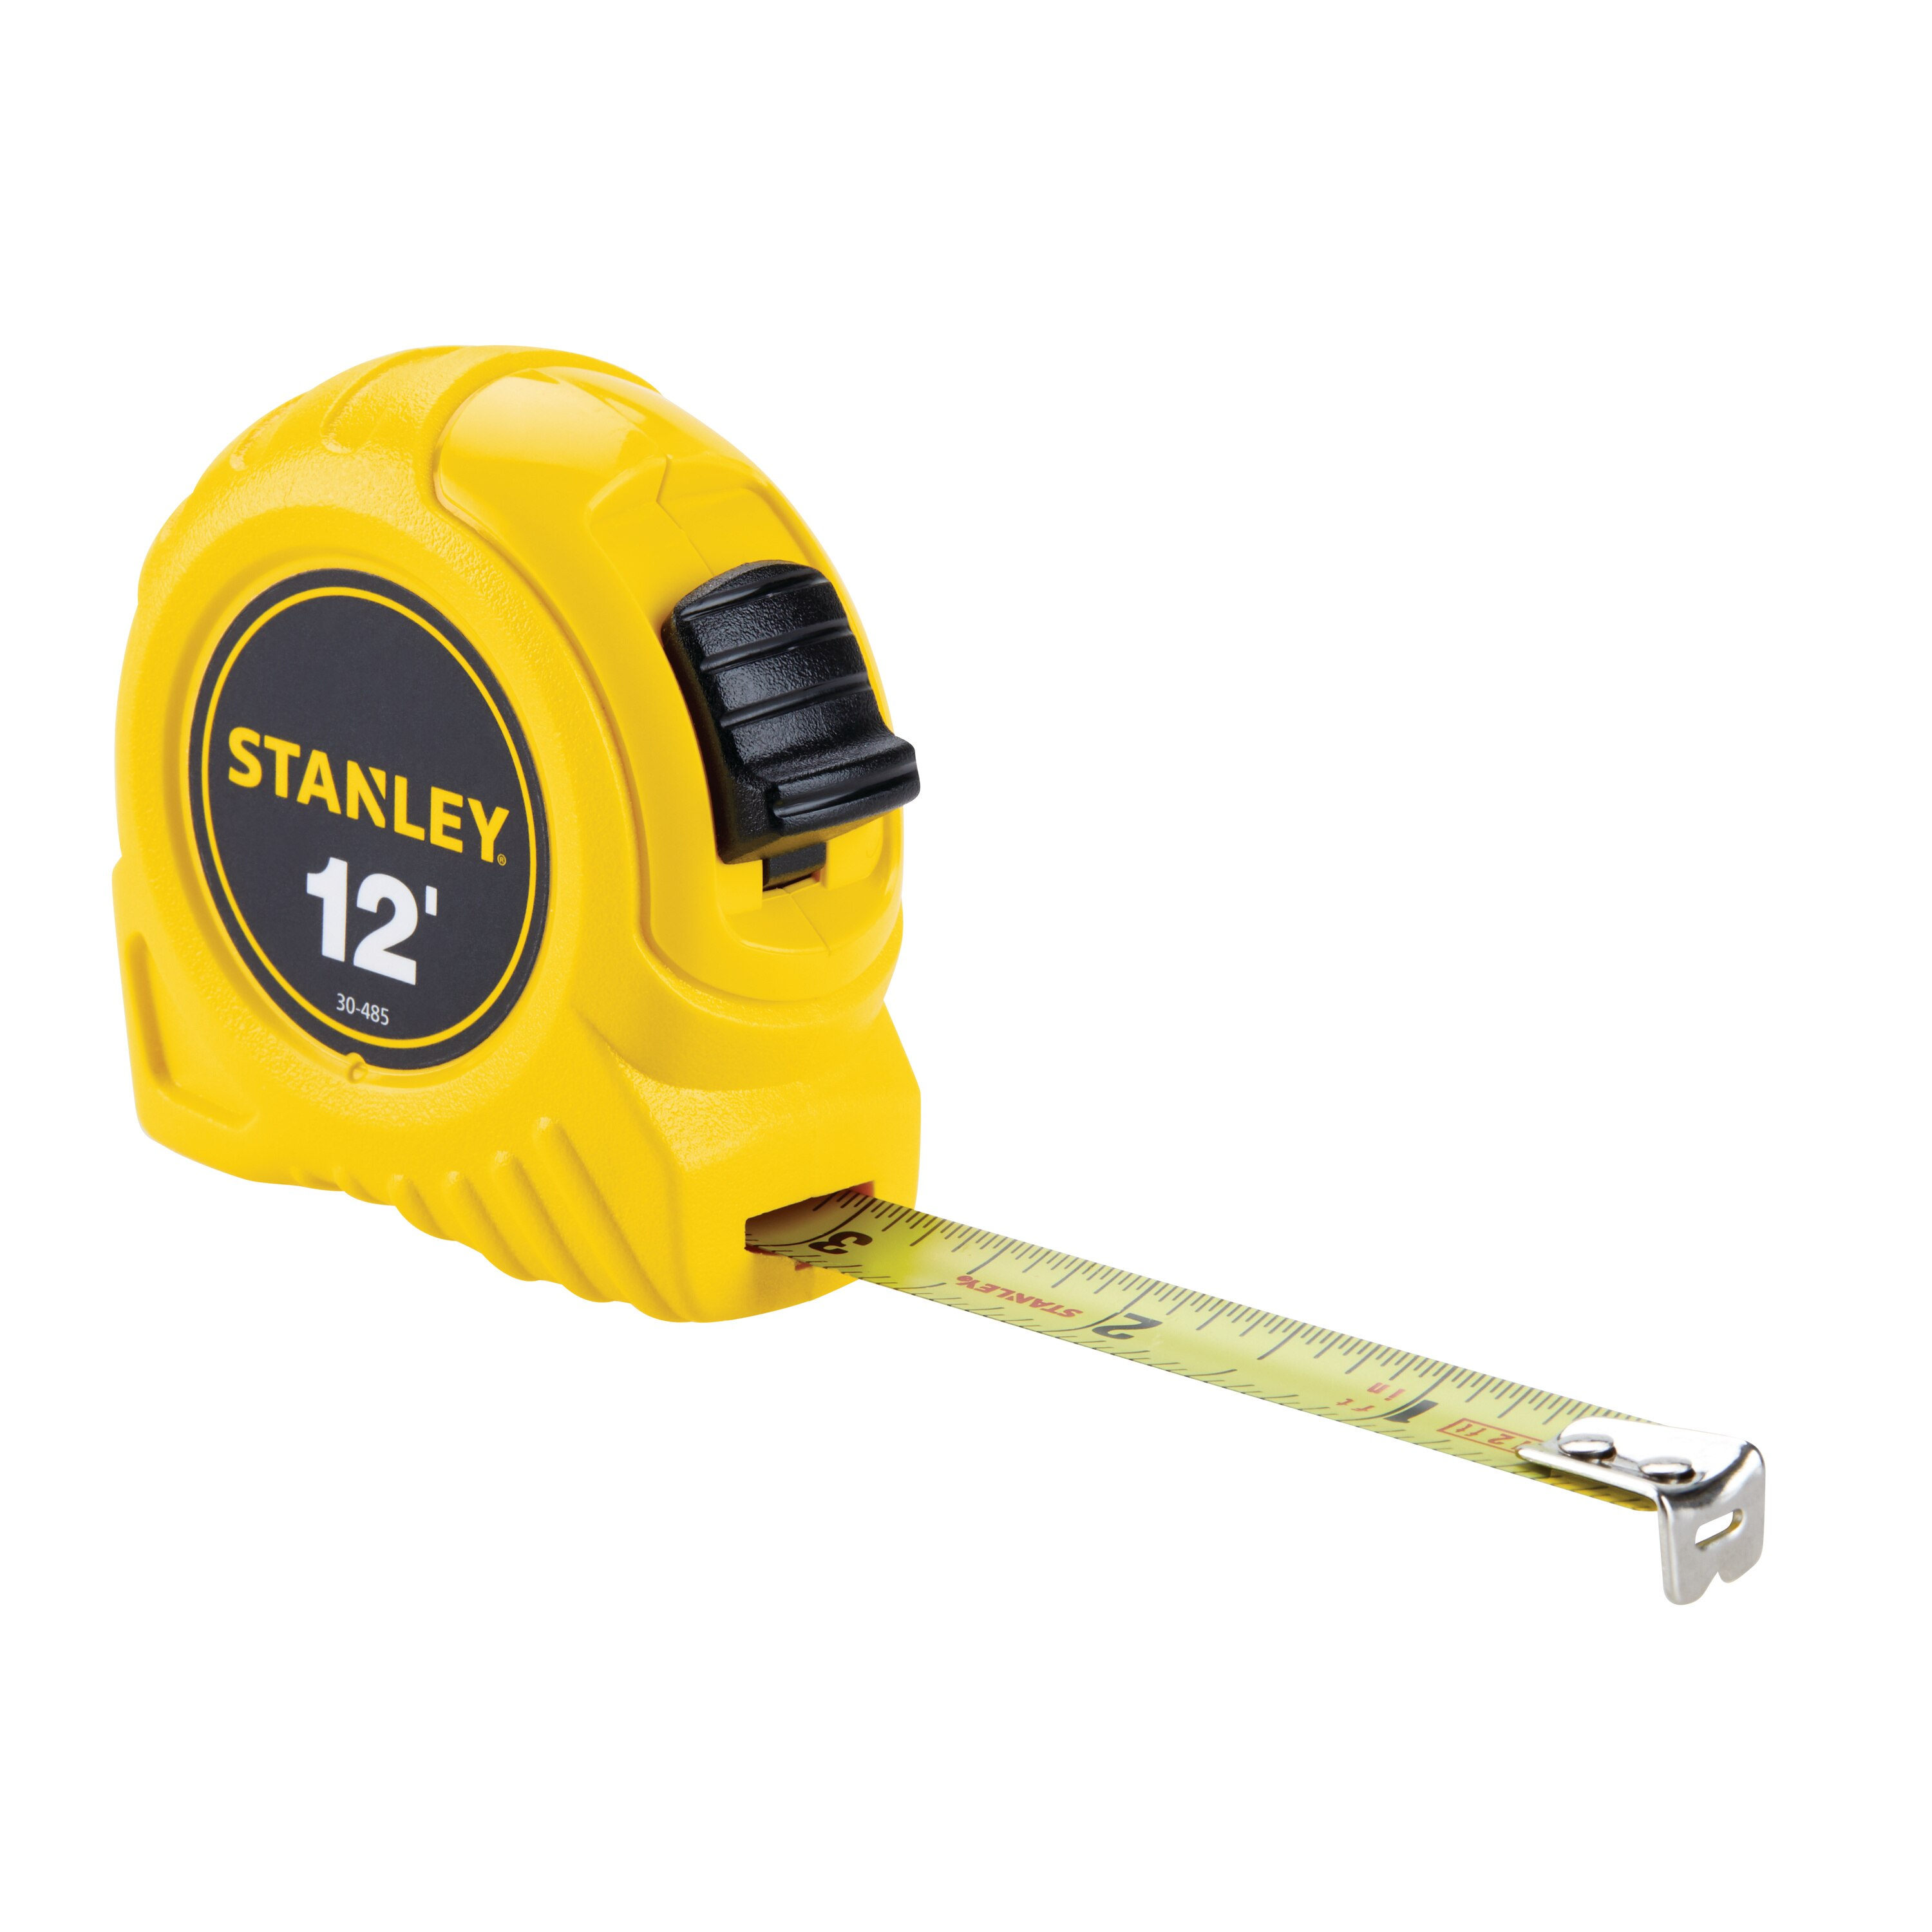 Stanley Tools - 12 ft Tape Measure - 30-485